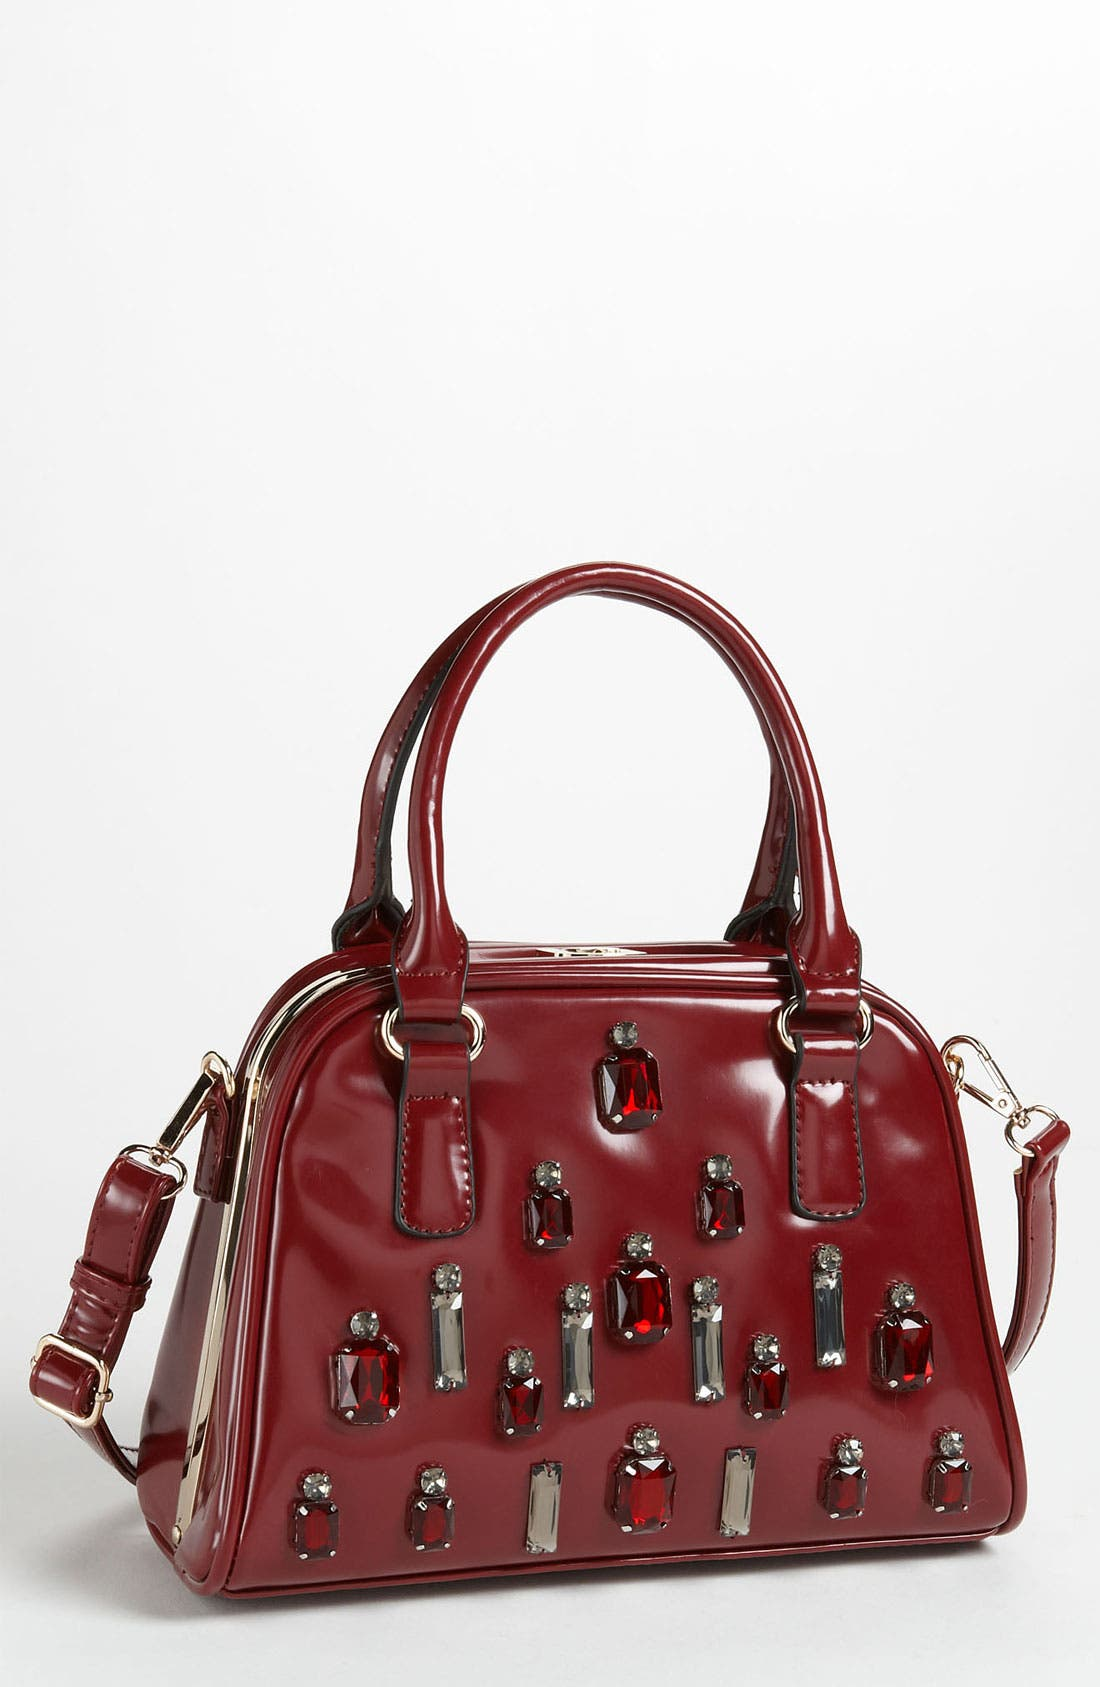 Alternate Image 1 Selected - Melie Bianco 'Avery' Satchel